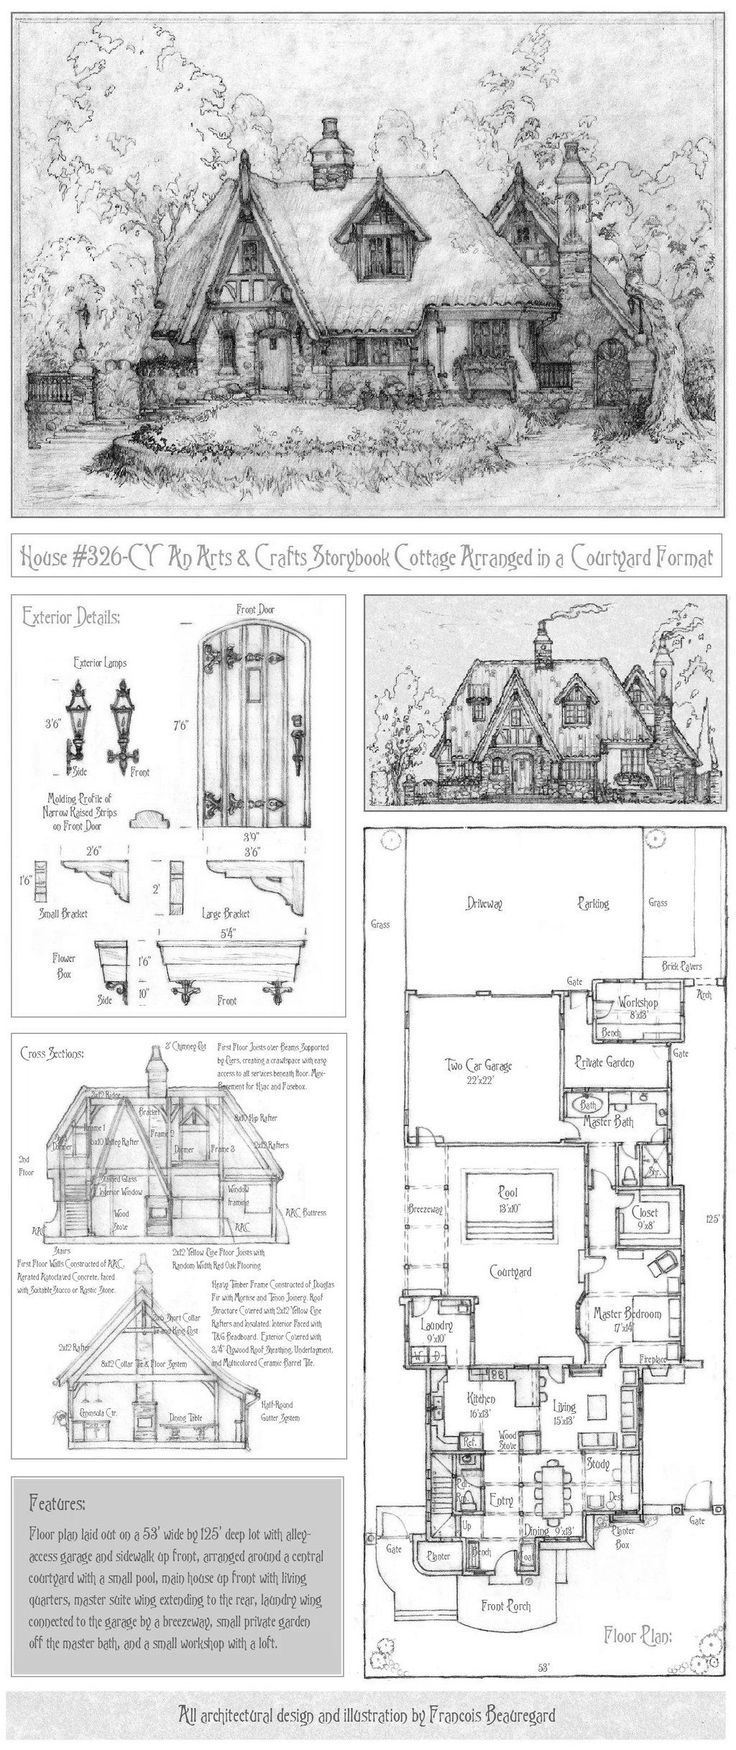 Fairytale cottage plans images for Cottage floor plans